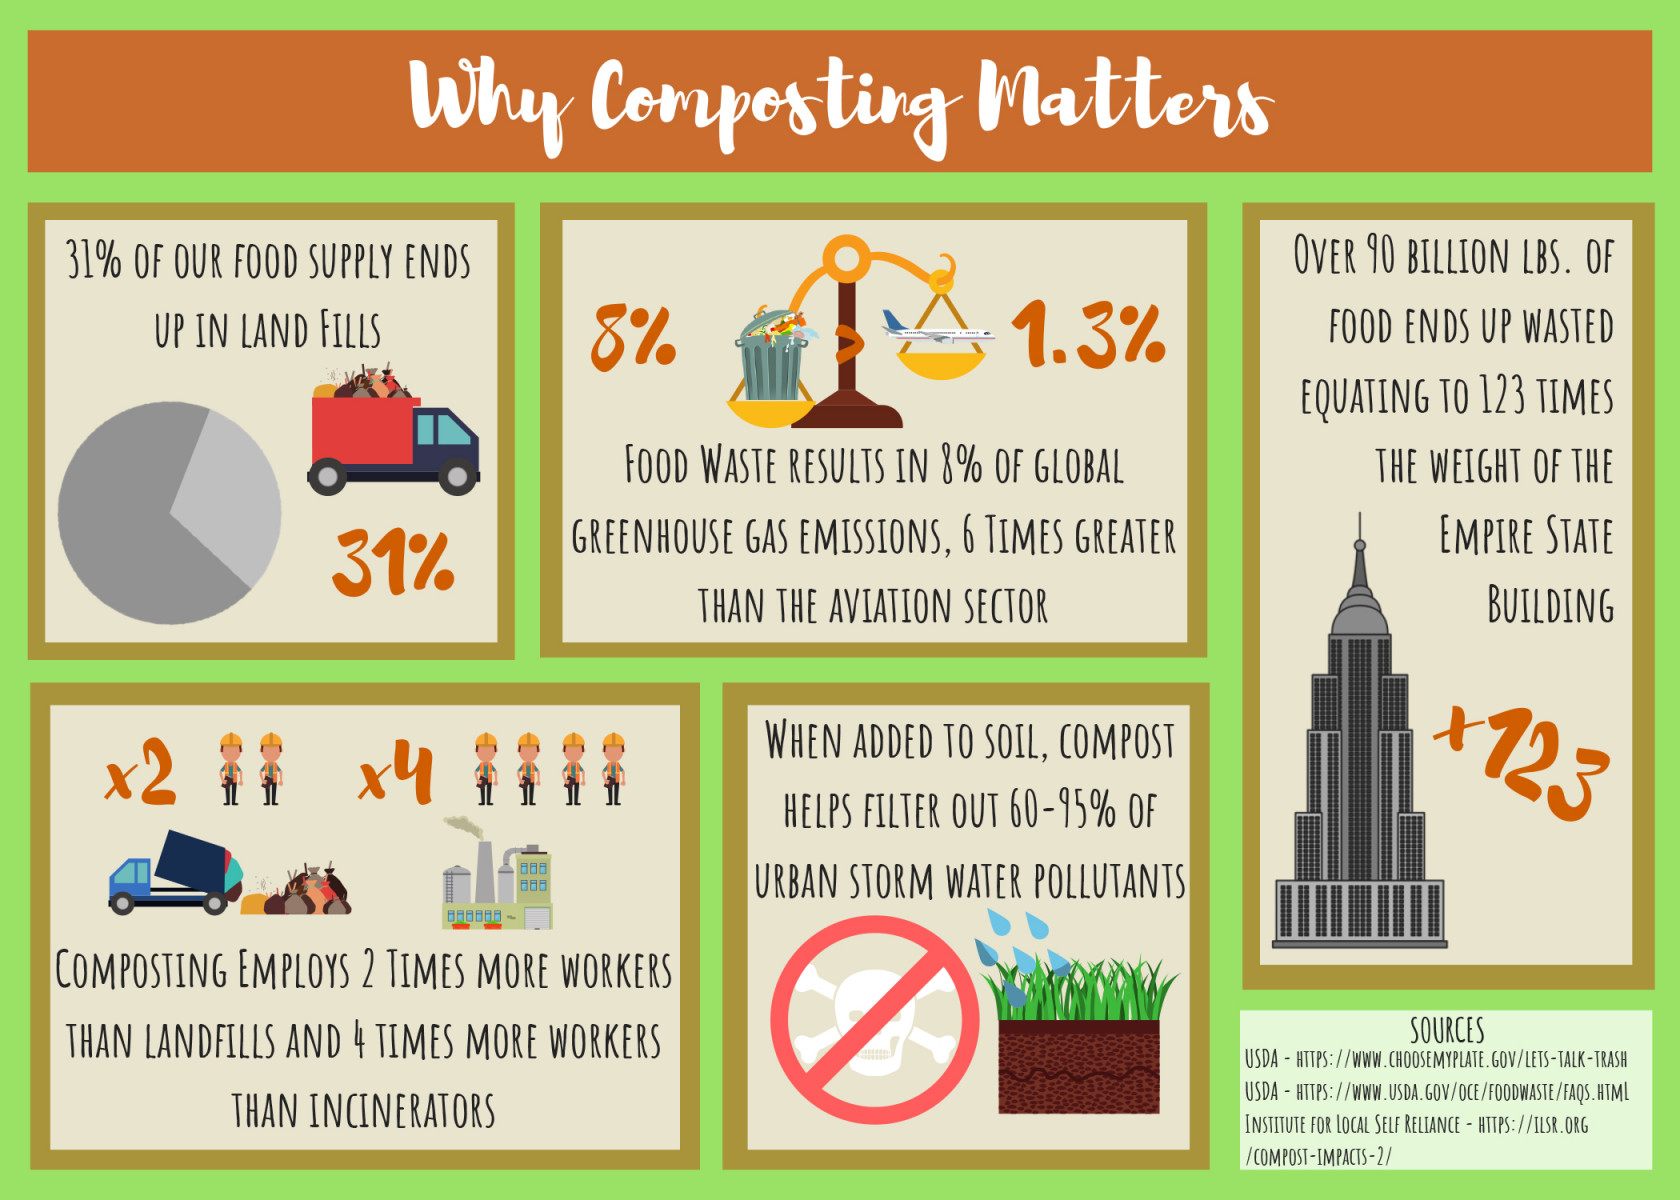 Why composting matters graphic